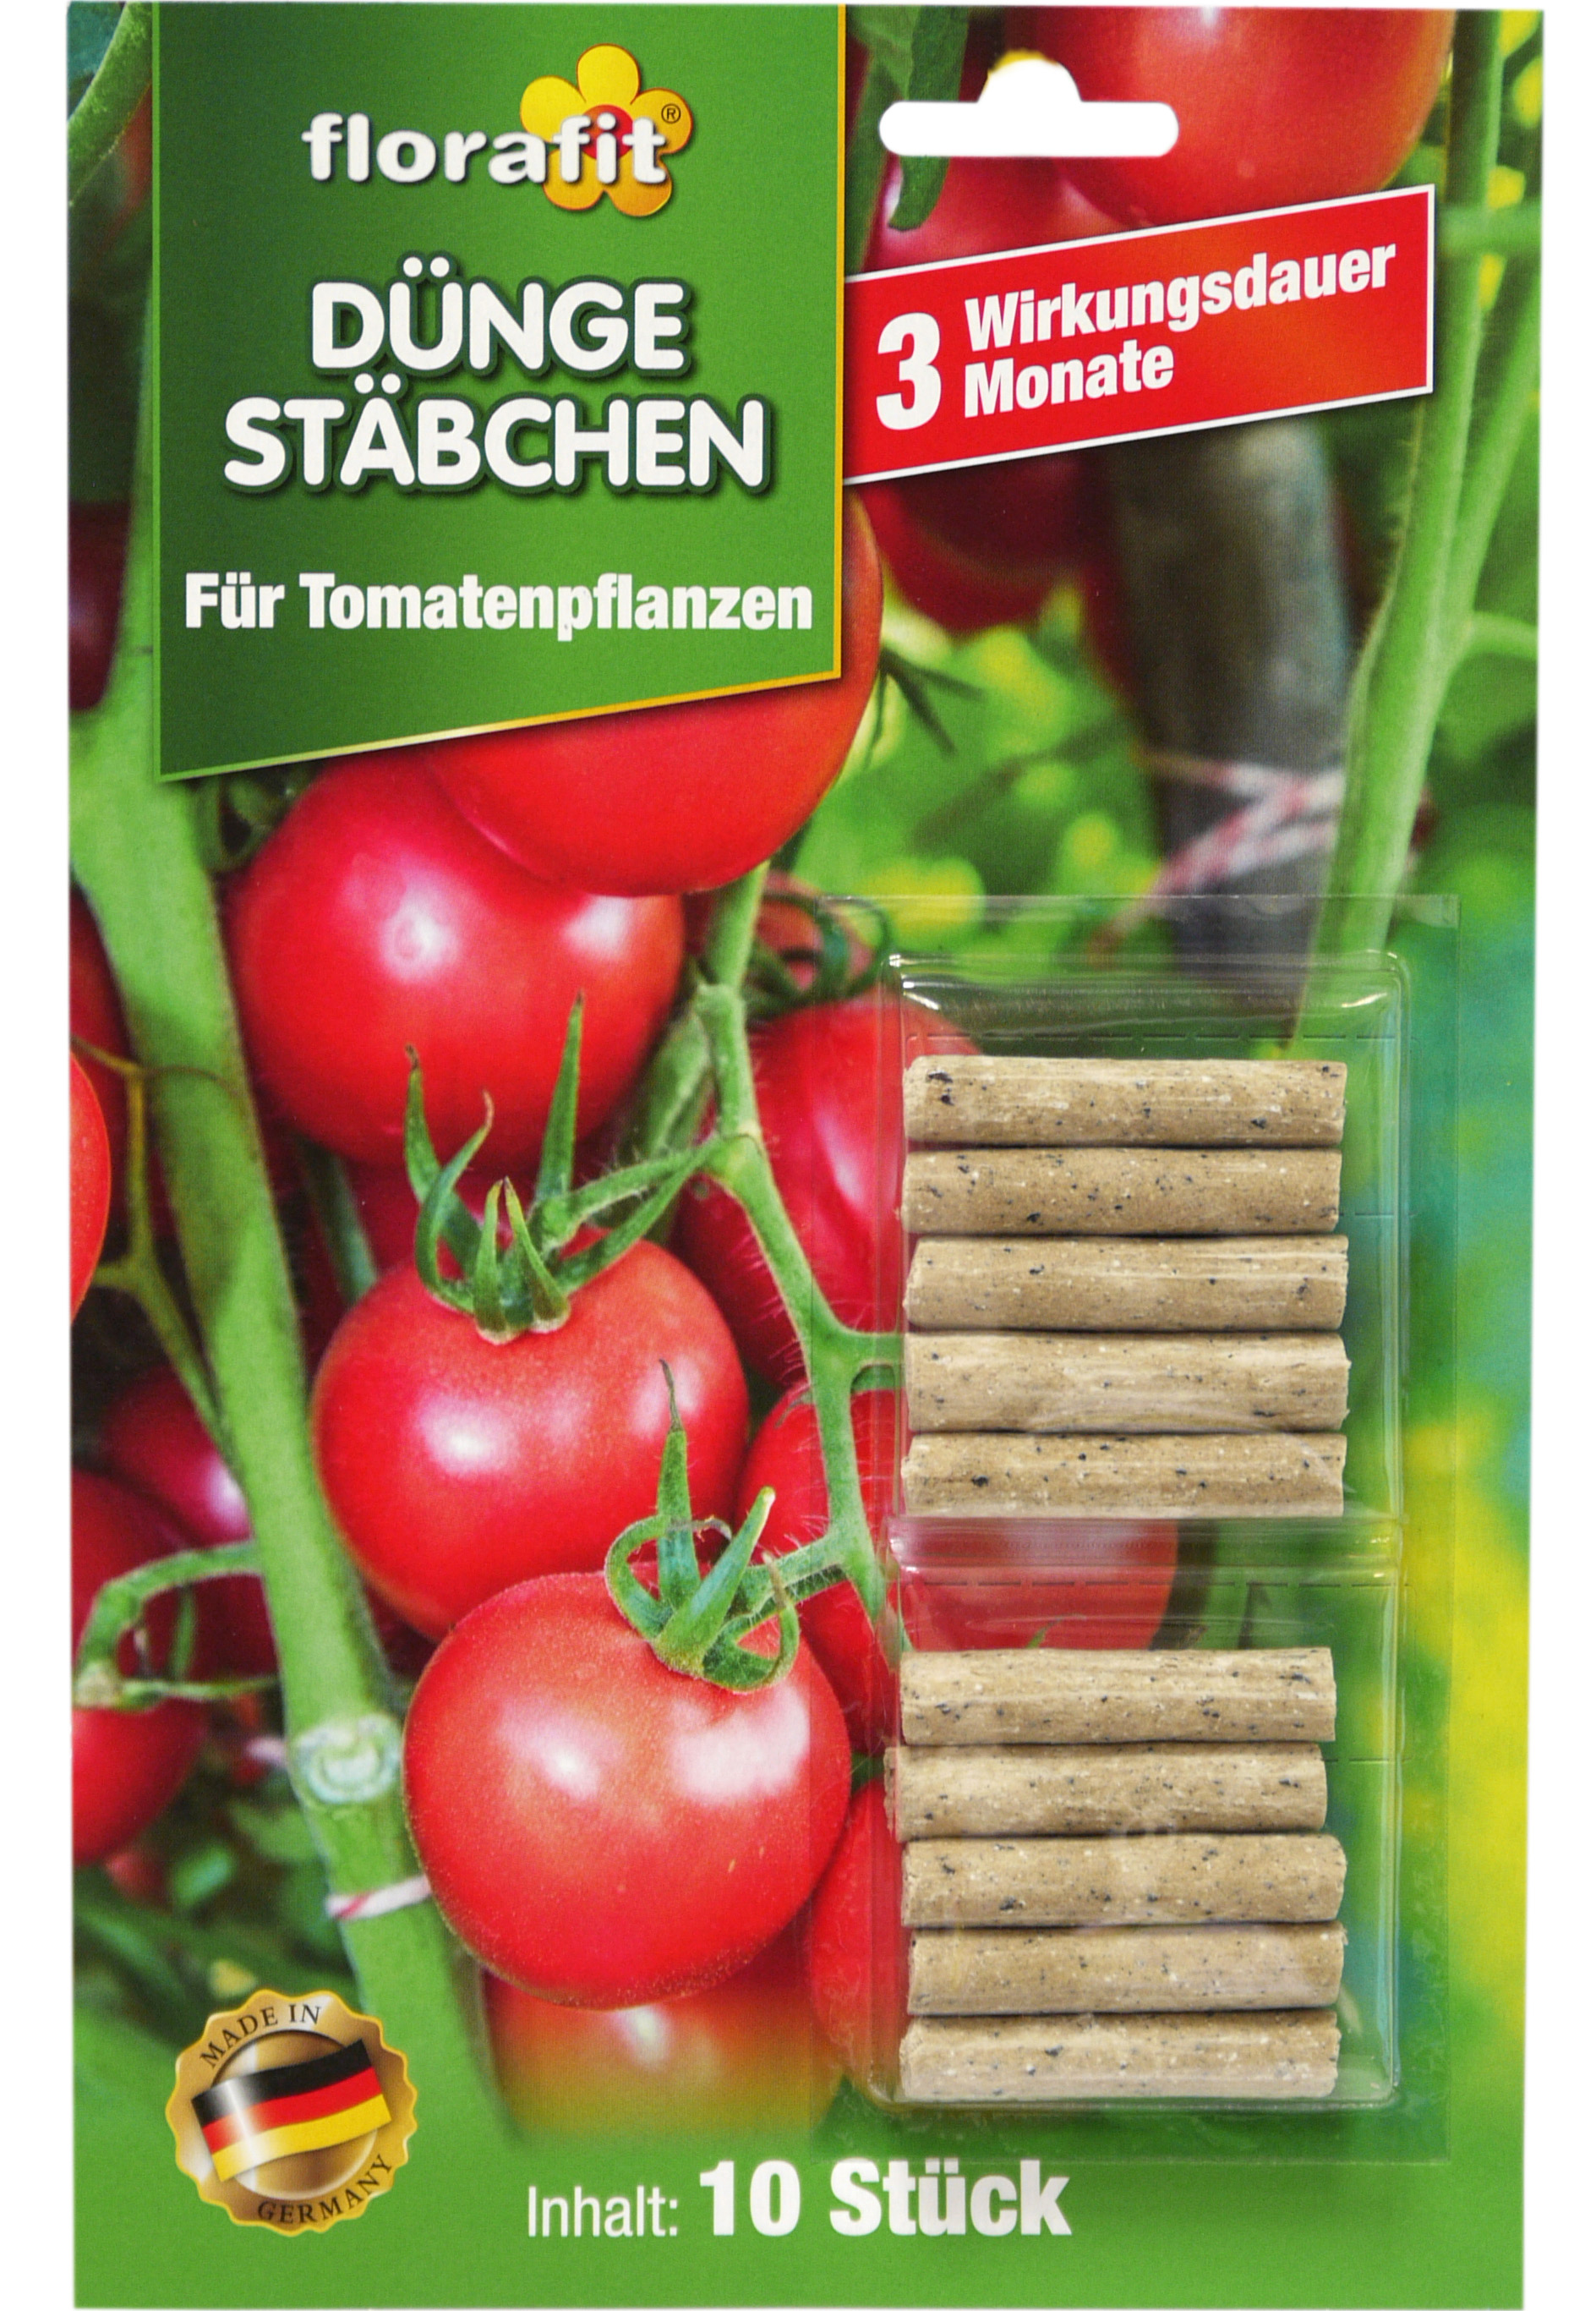 02245 - fertilizer sticks for tomatoes, 10 pcs blistered